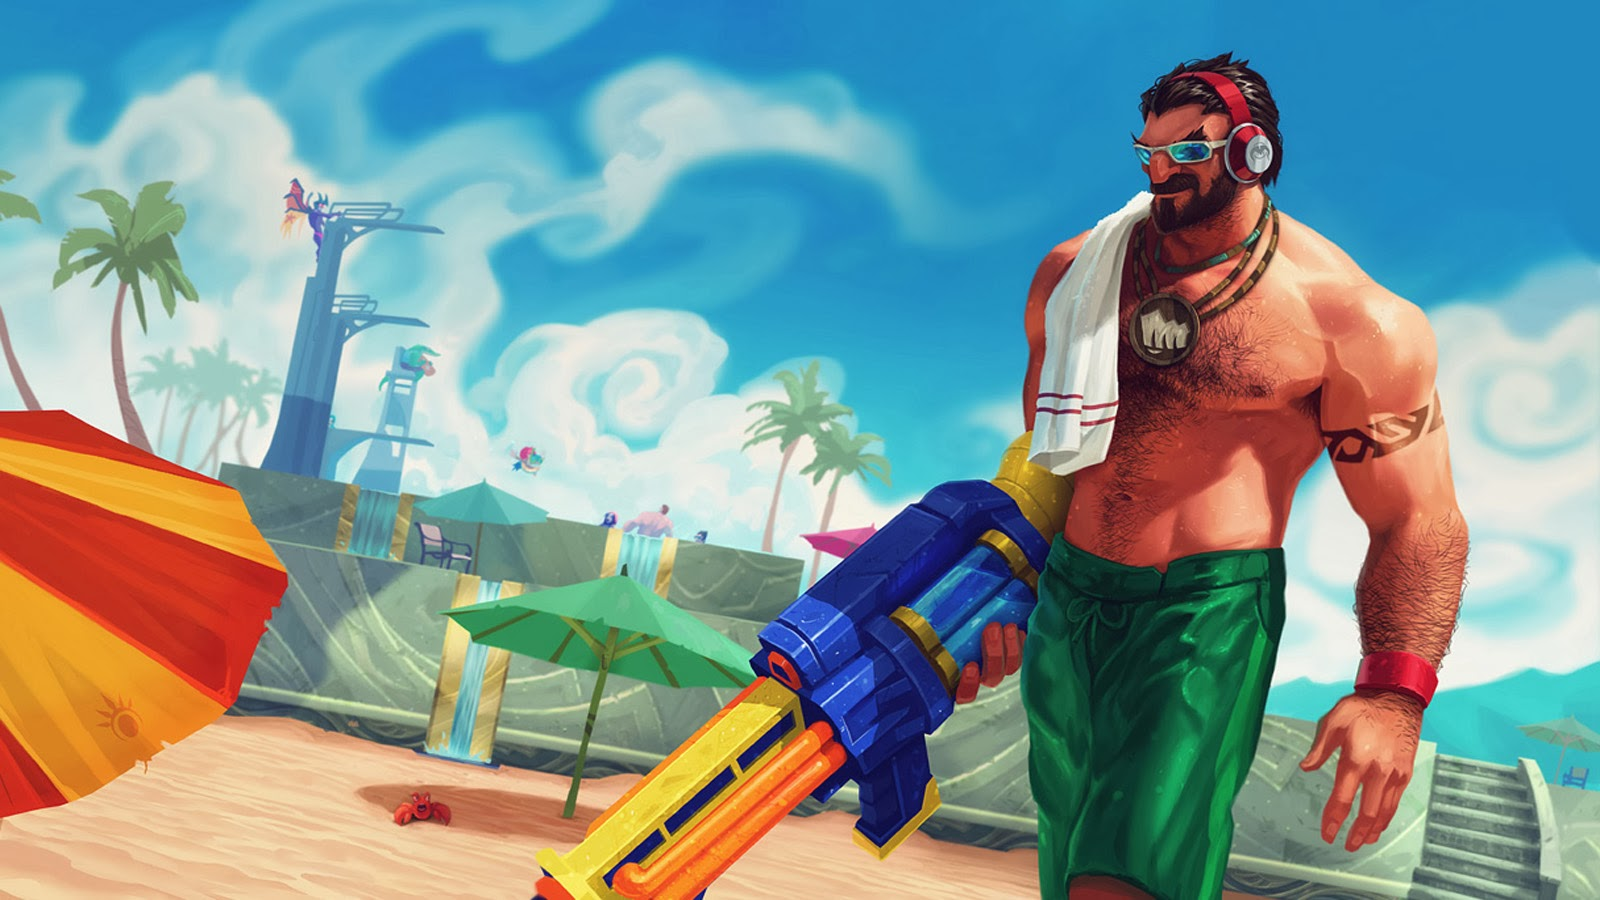 So no Pool Party Skins this Summer? : leagueoflegends